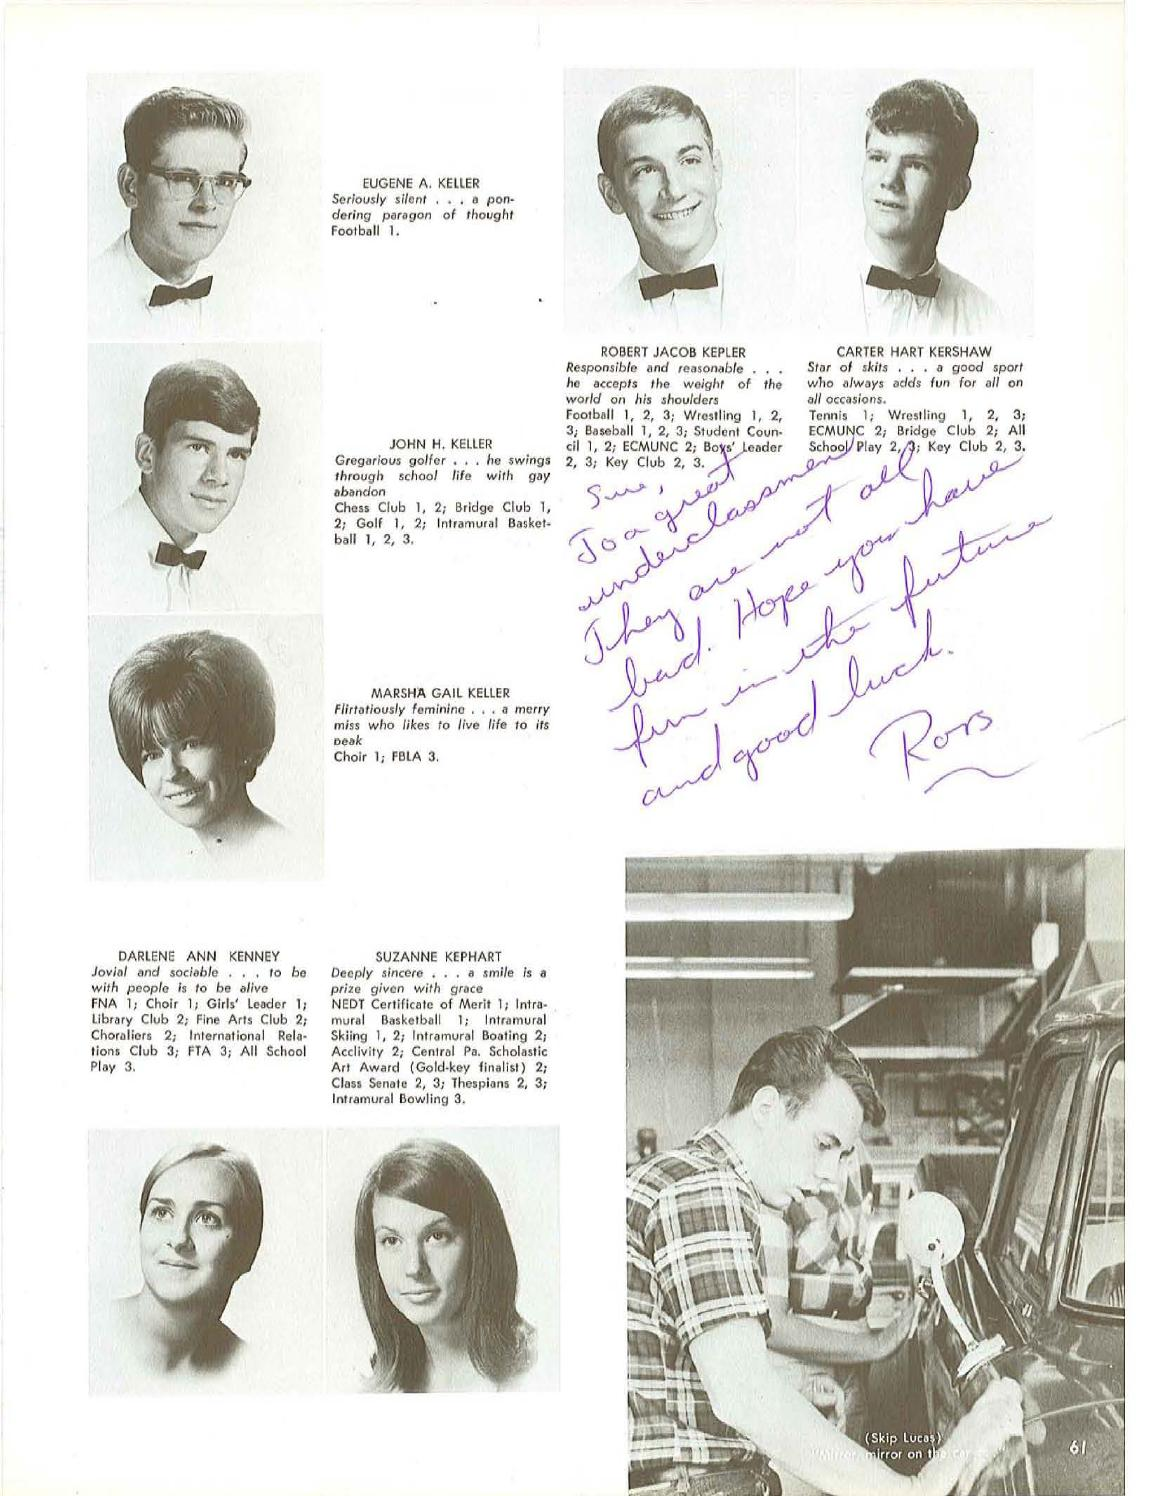 1968 Yearbook by Affinity Connection - issuu